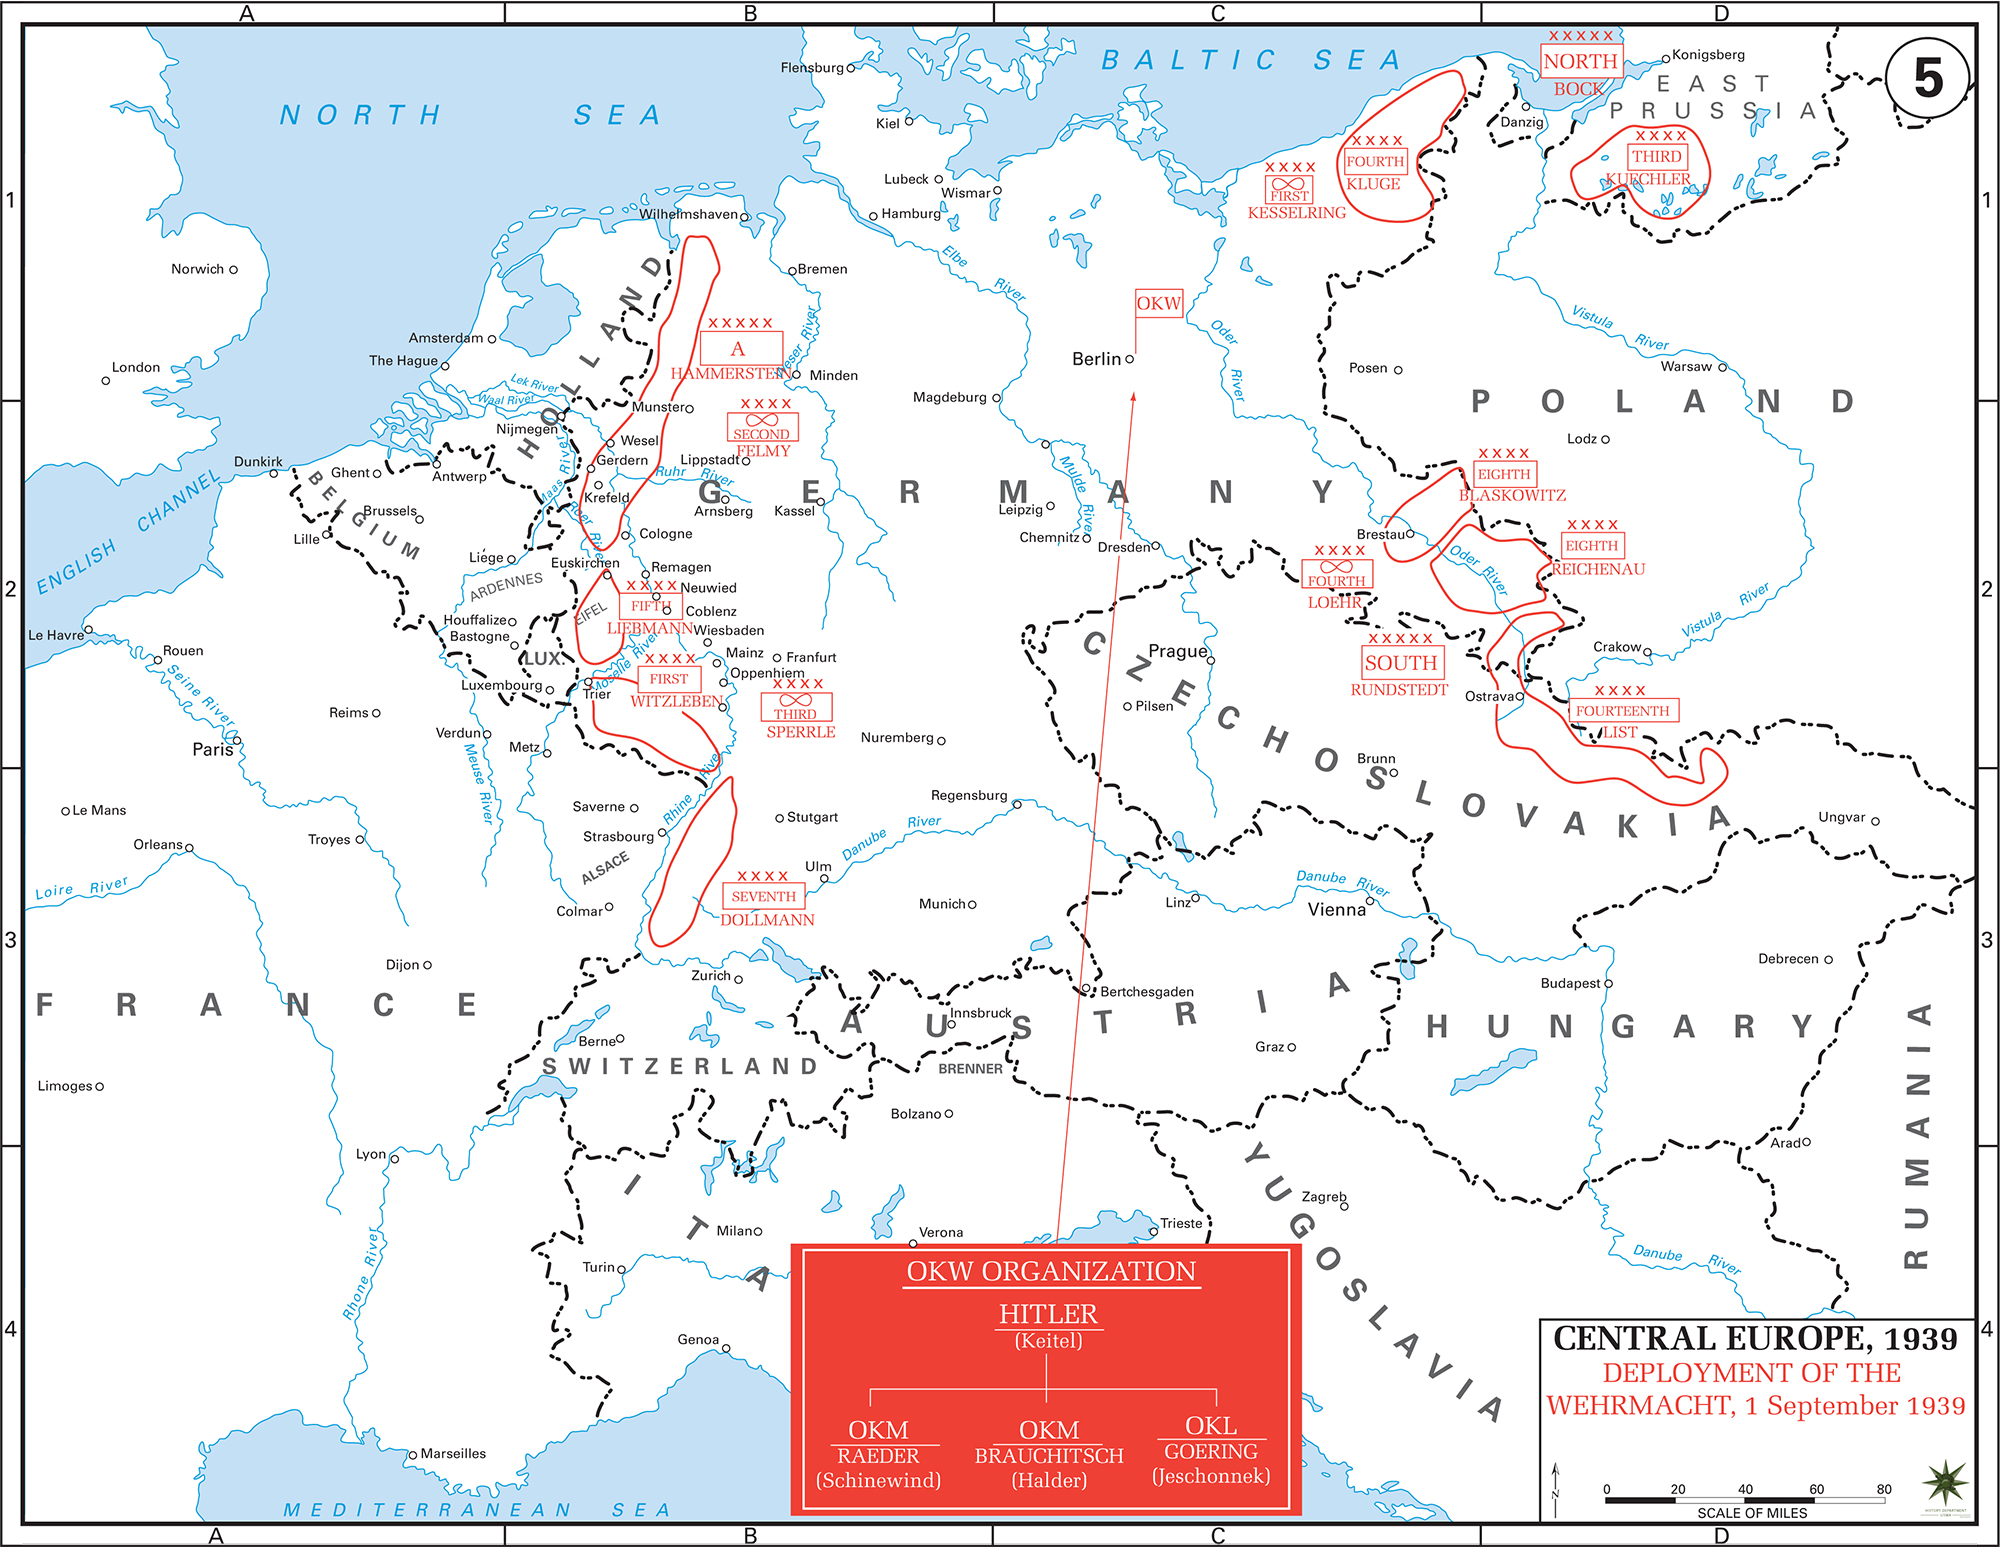 Map of WWII - Central Europe 1939 - Wehrmacht